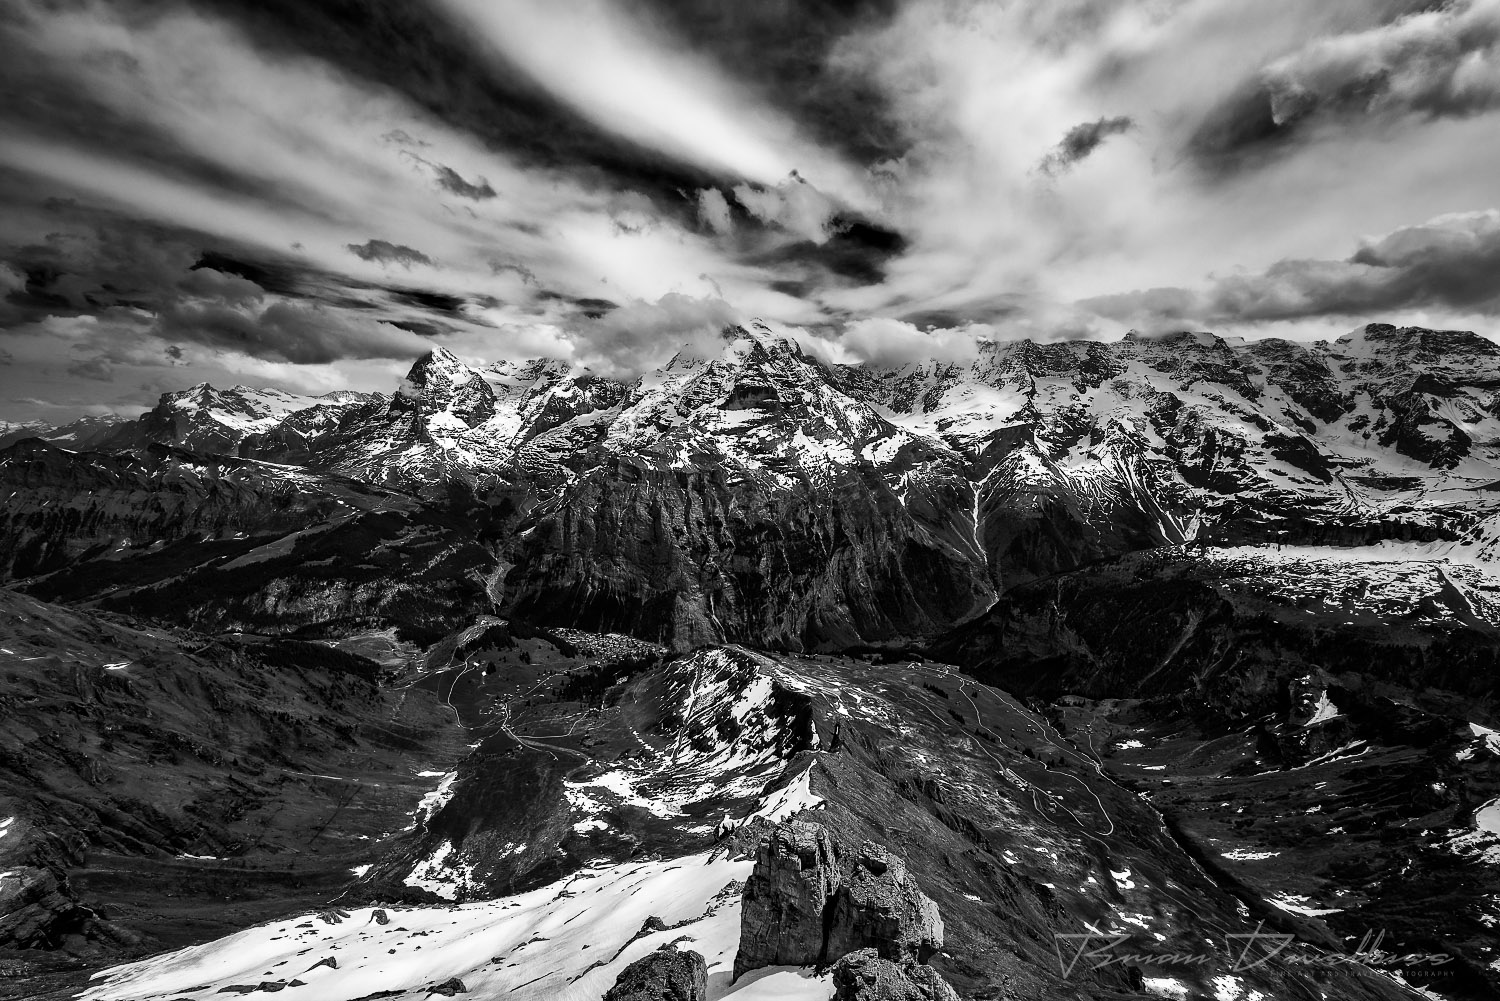 Mountains of Bern, Switzerland from Birg in black and white.